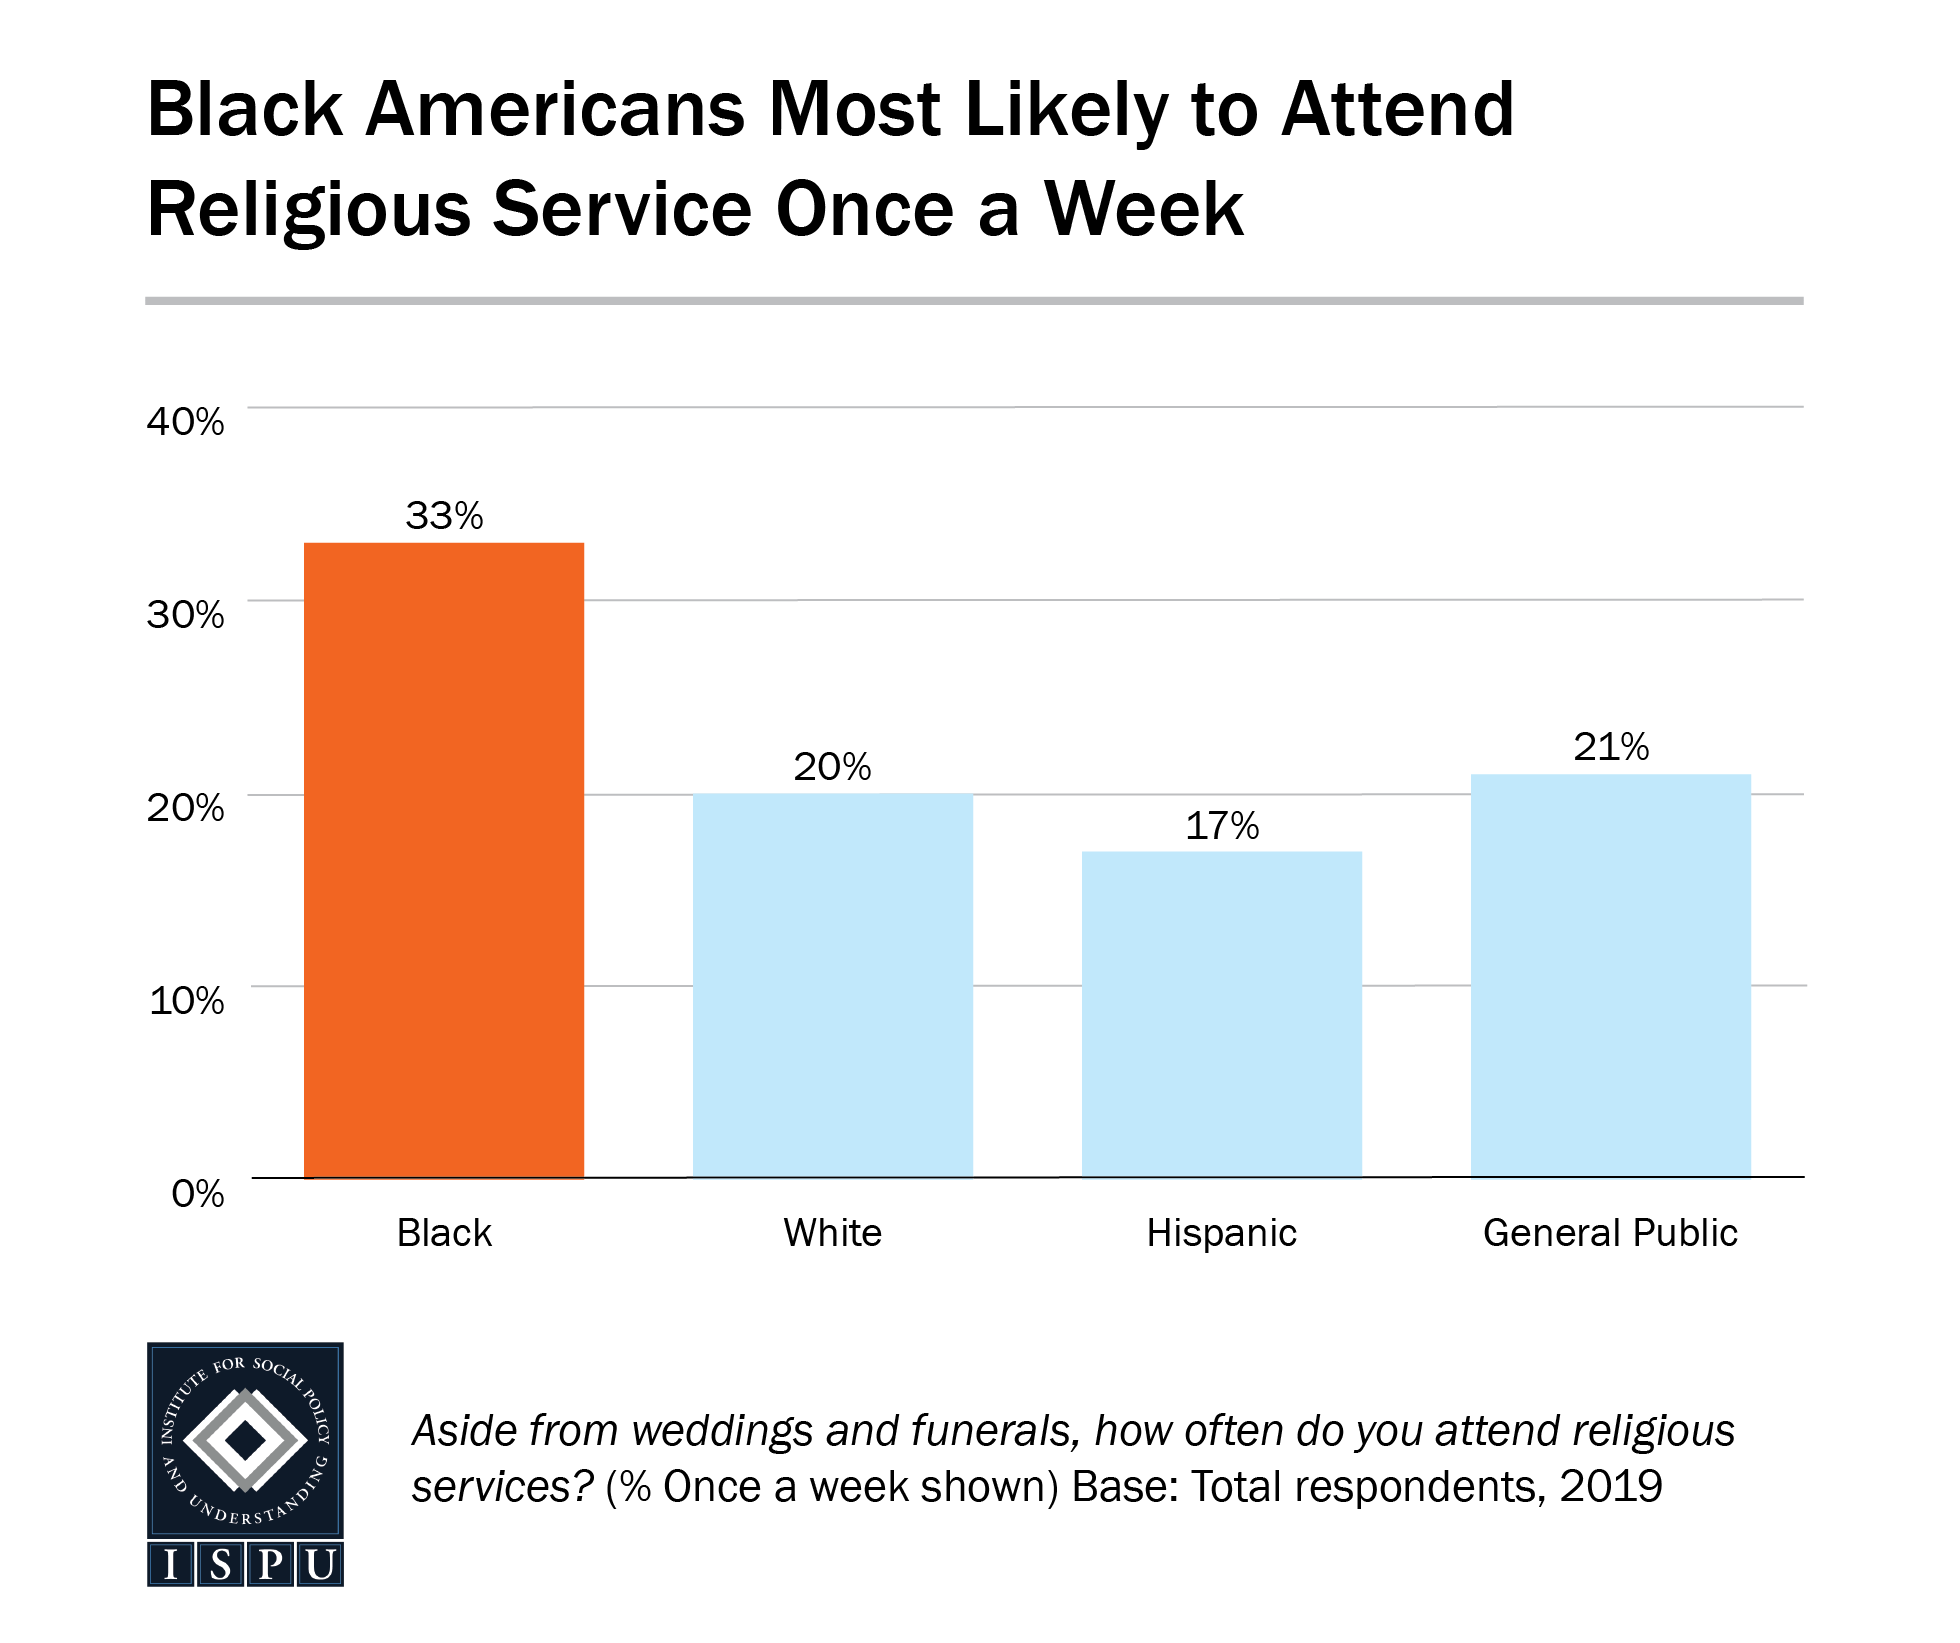 A bar graph showing that Black Americans are the most likely racial/ethnic group in the US to attend religious service once a week